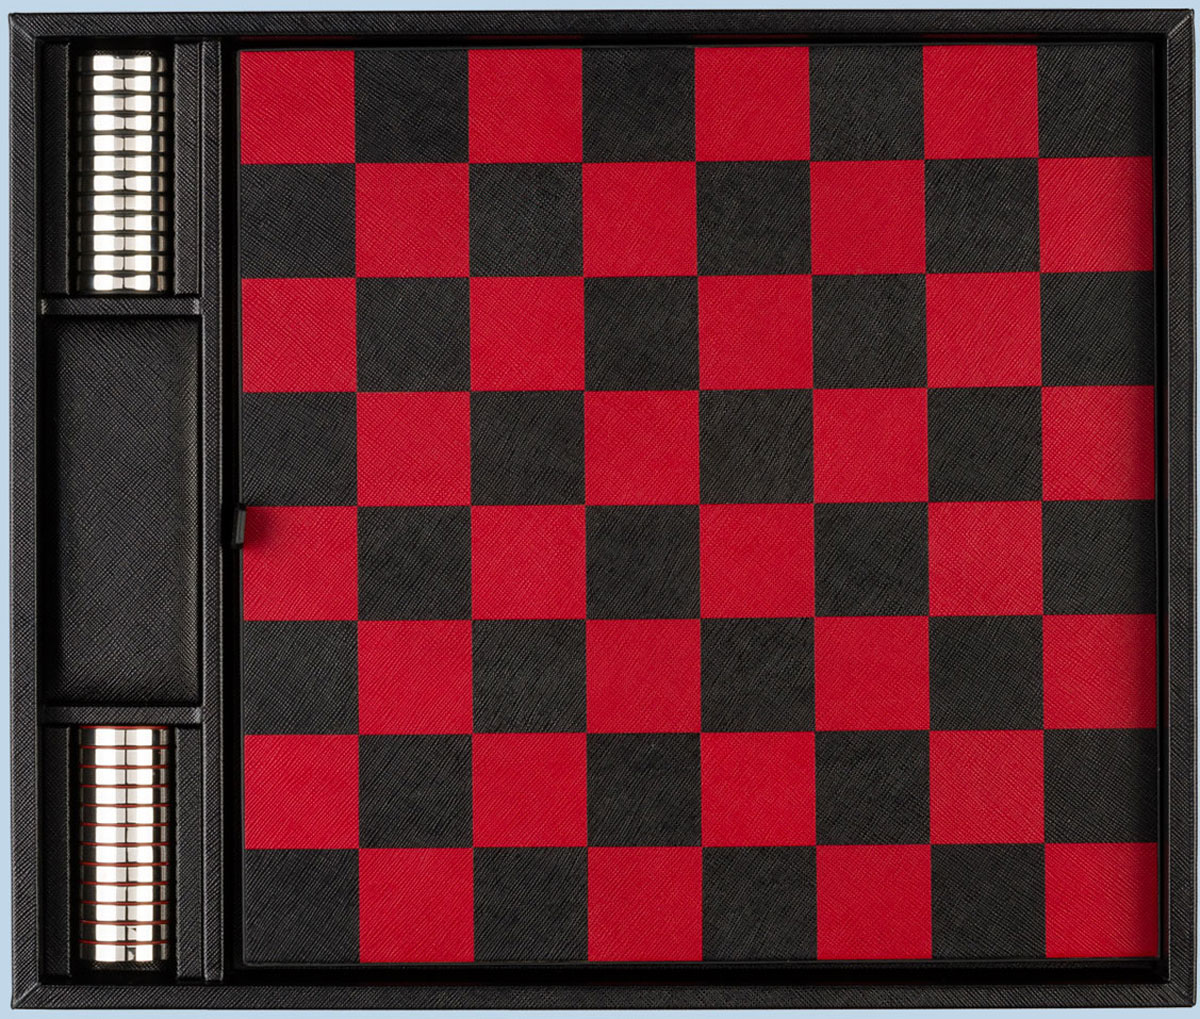 Prada Board Games